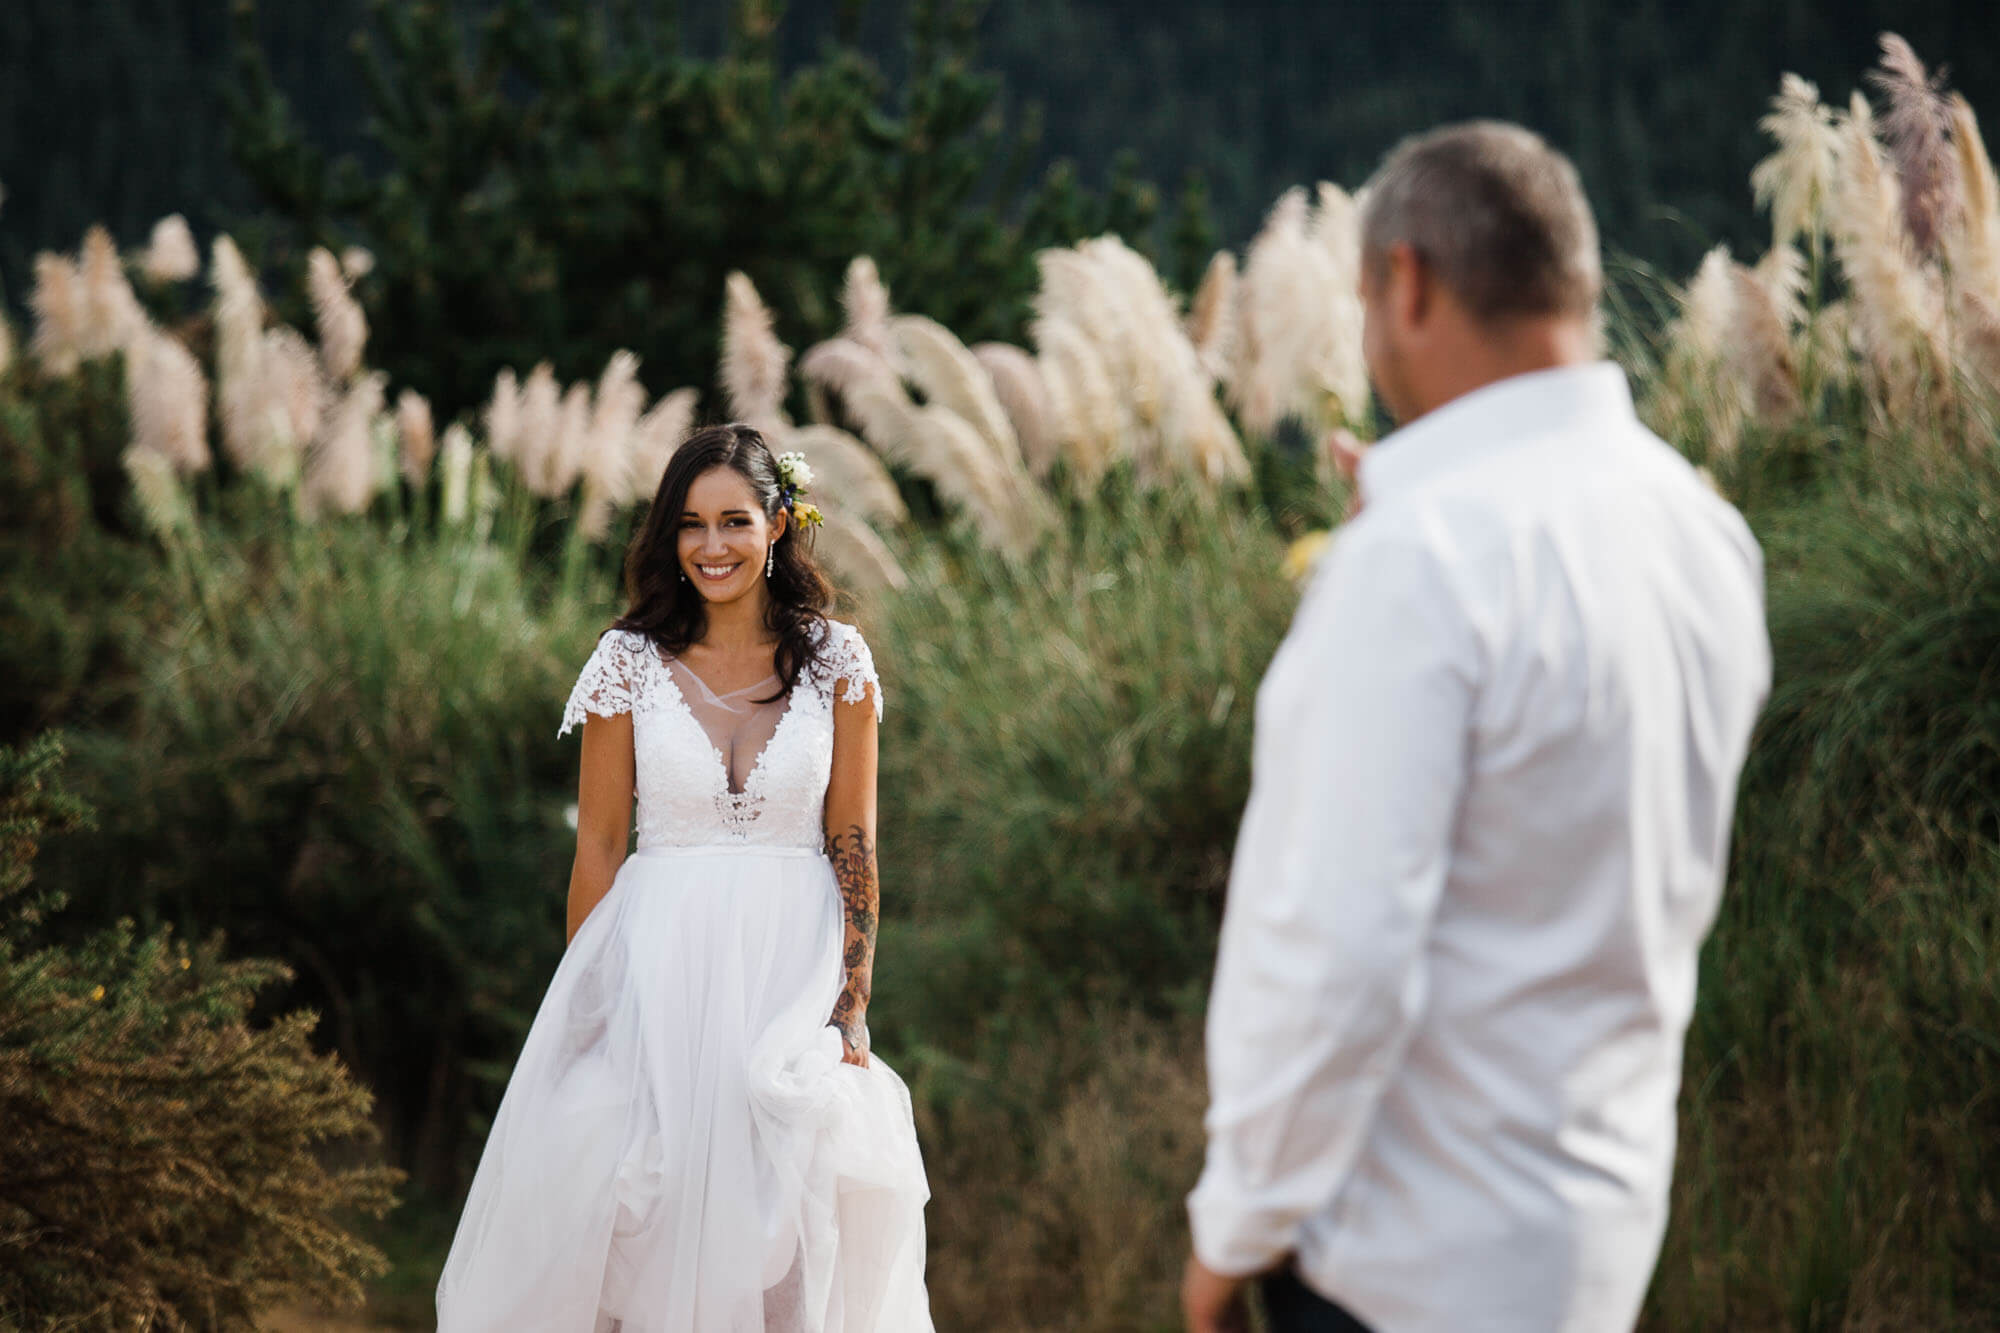 bride-walking-towards-groom-boho-outdoor-wedding.jpg